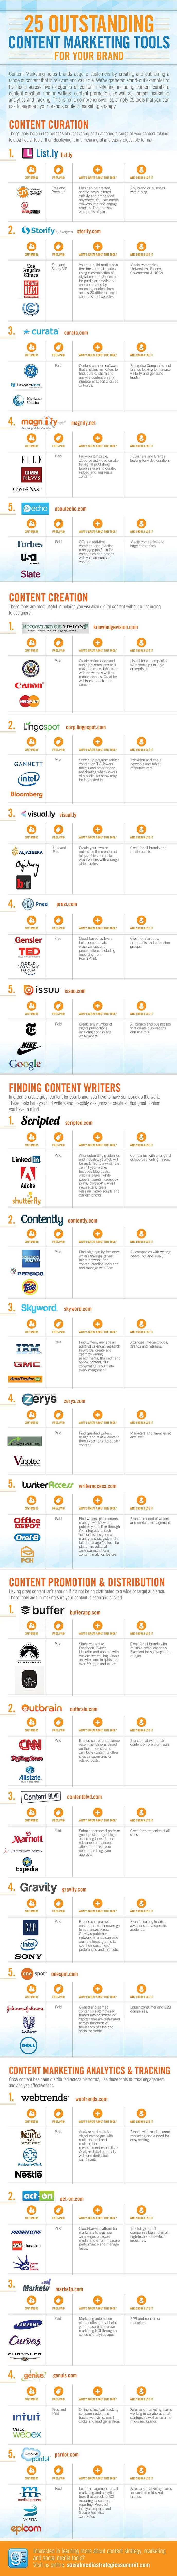 infographic, content marketing tools